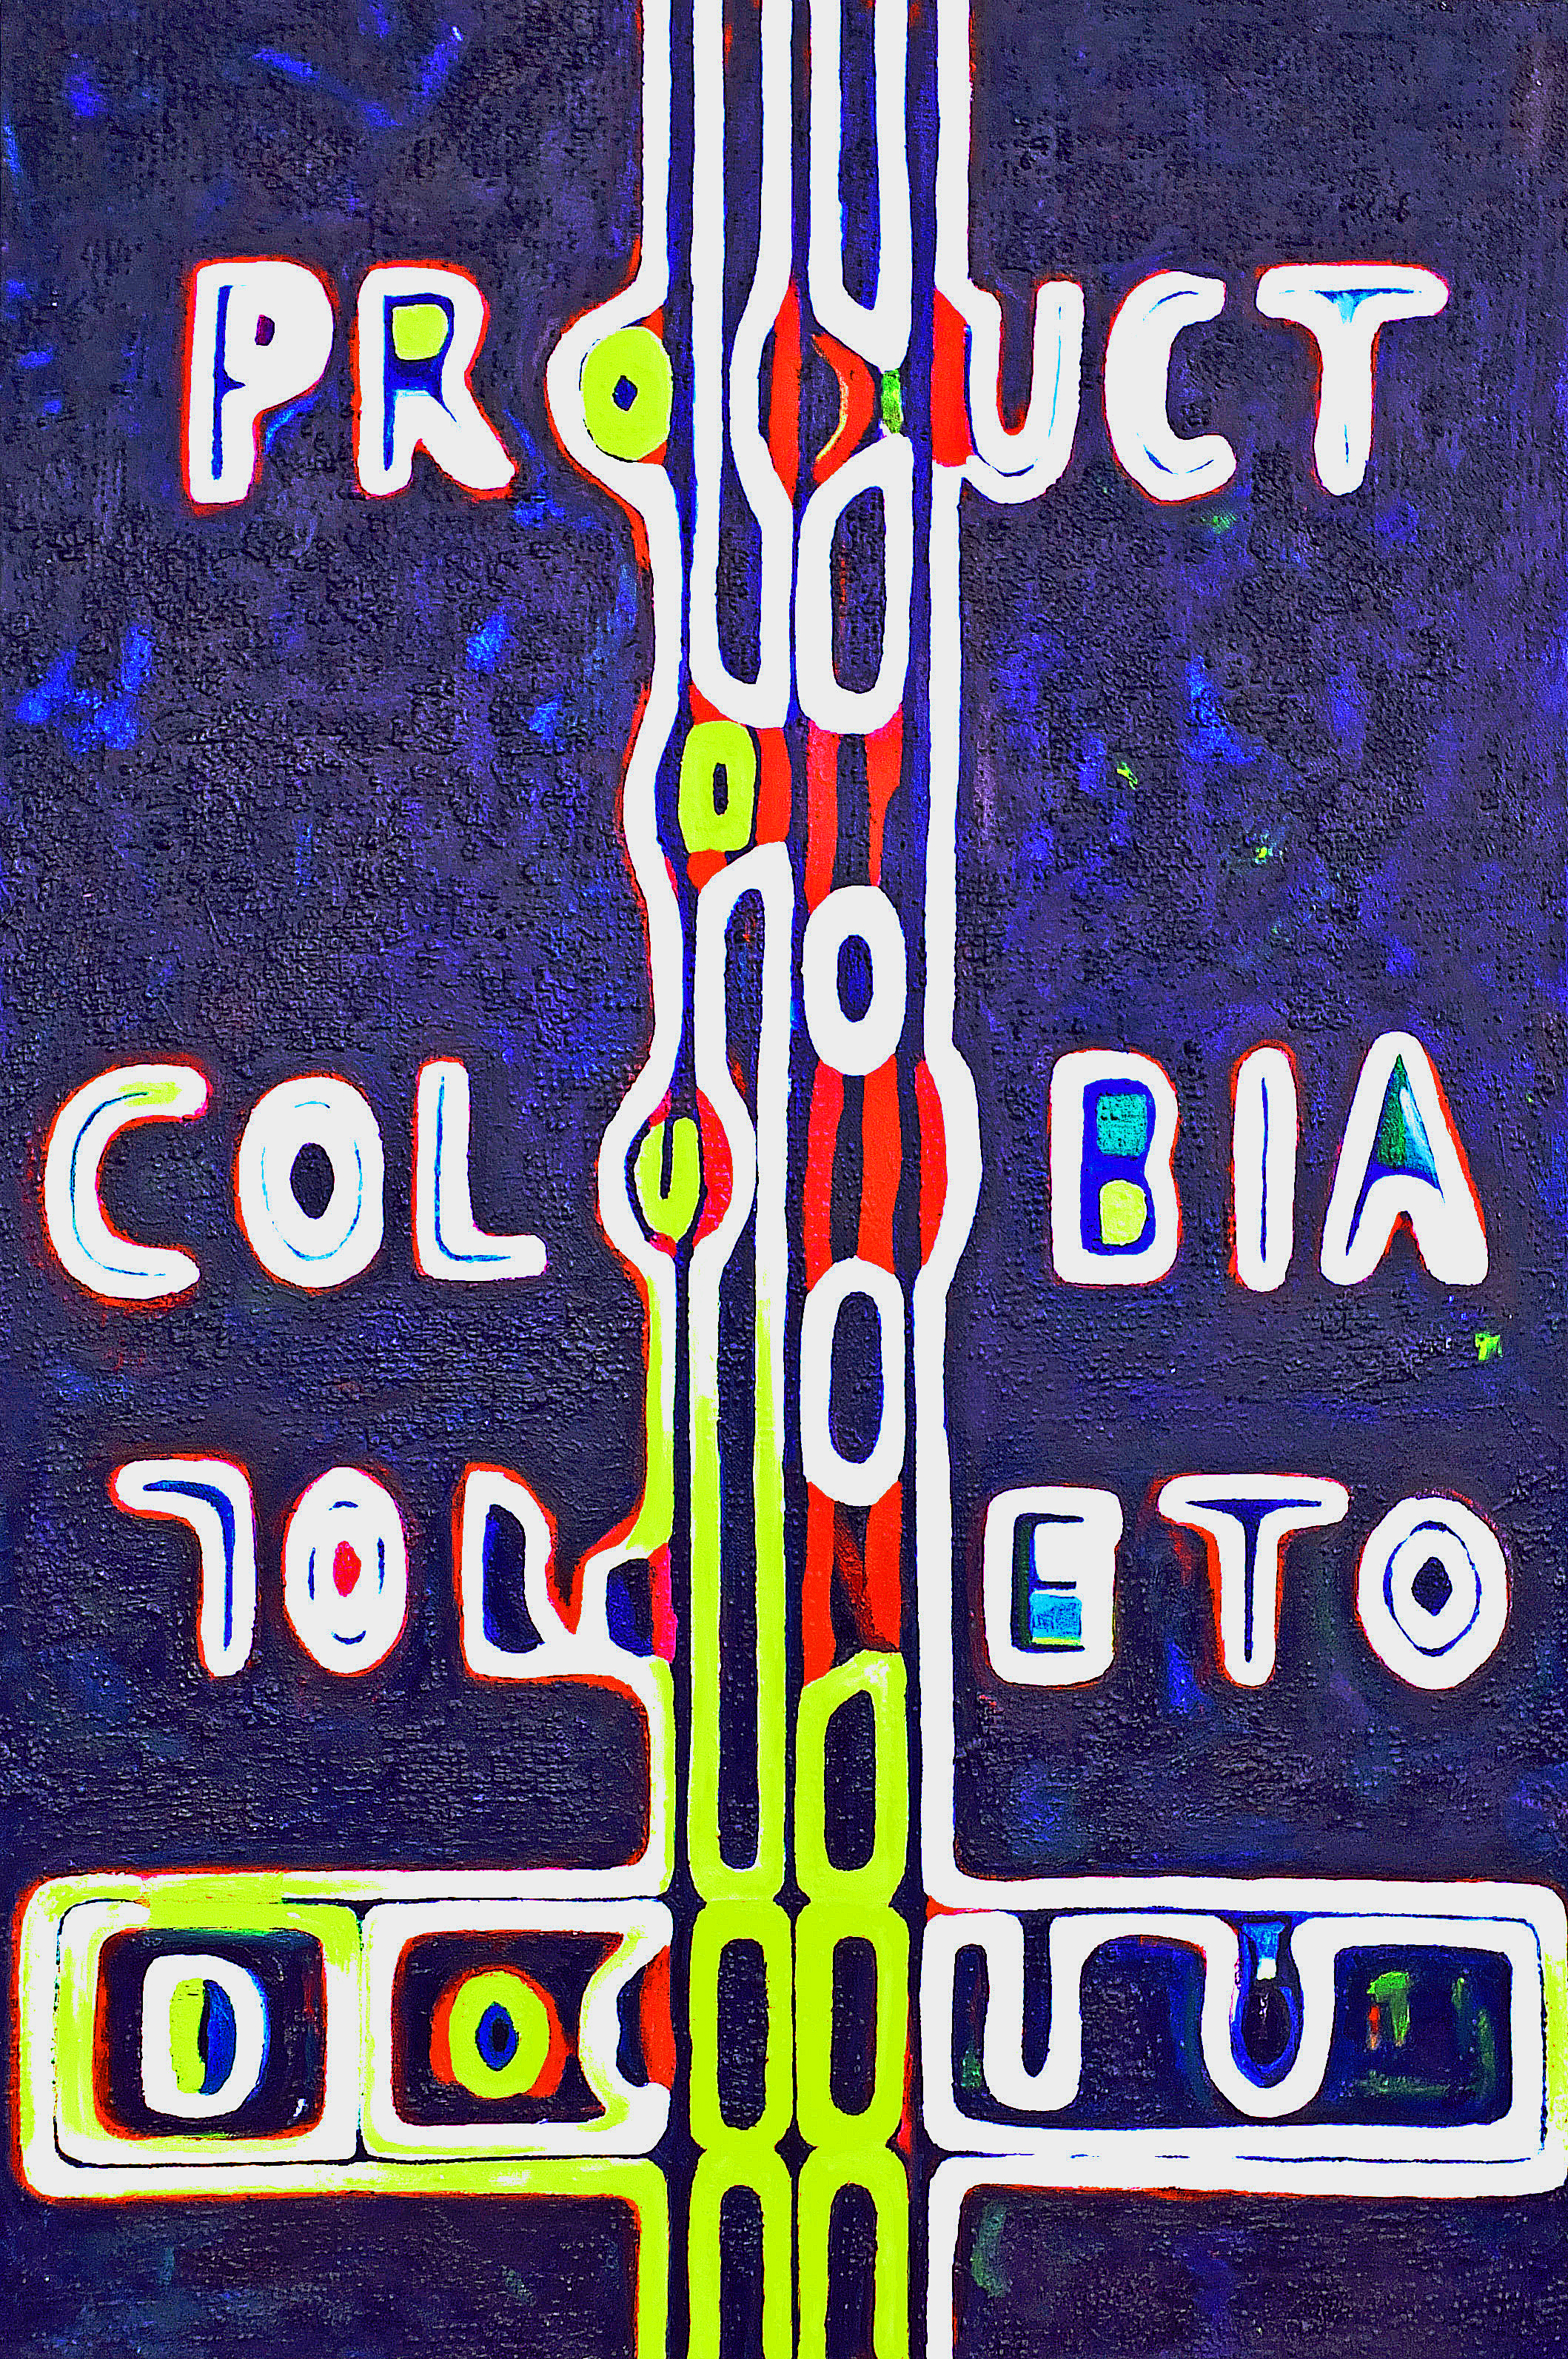 Product of Colombia I